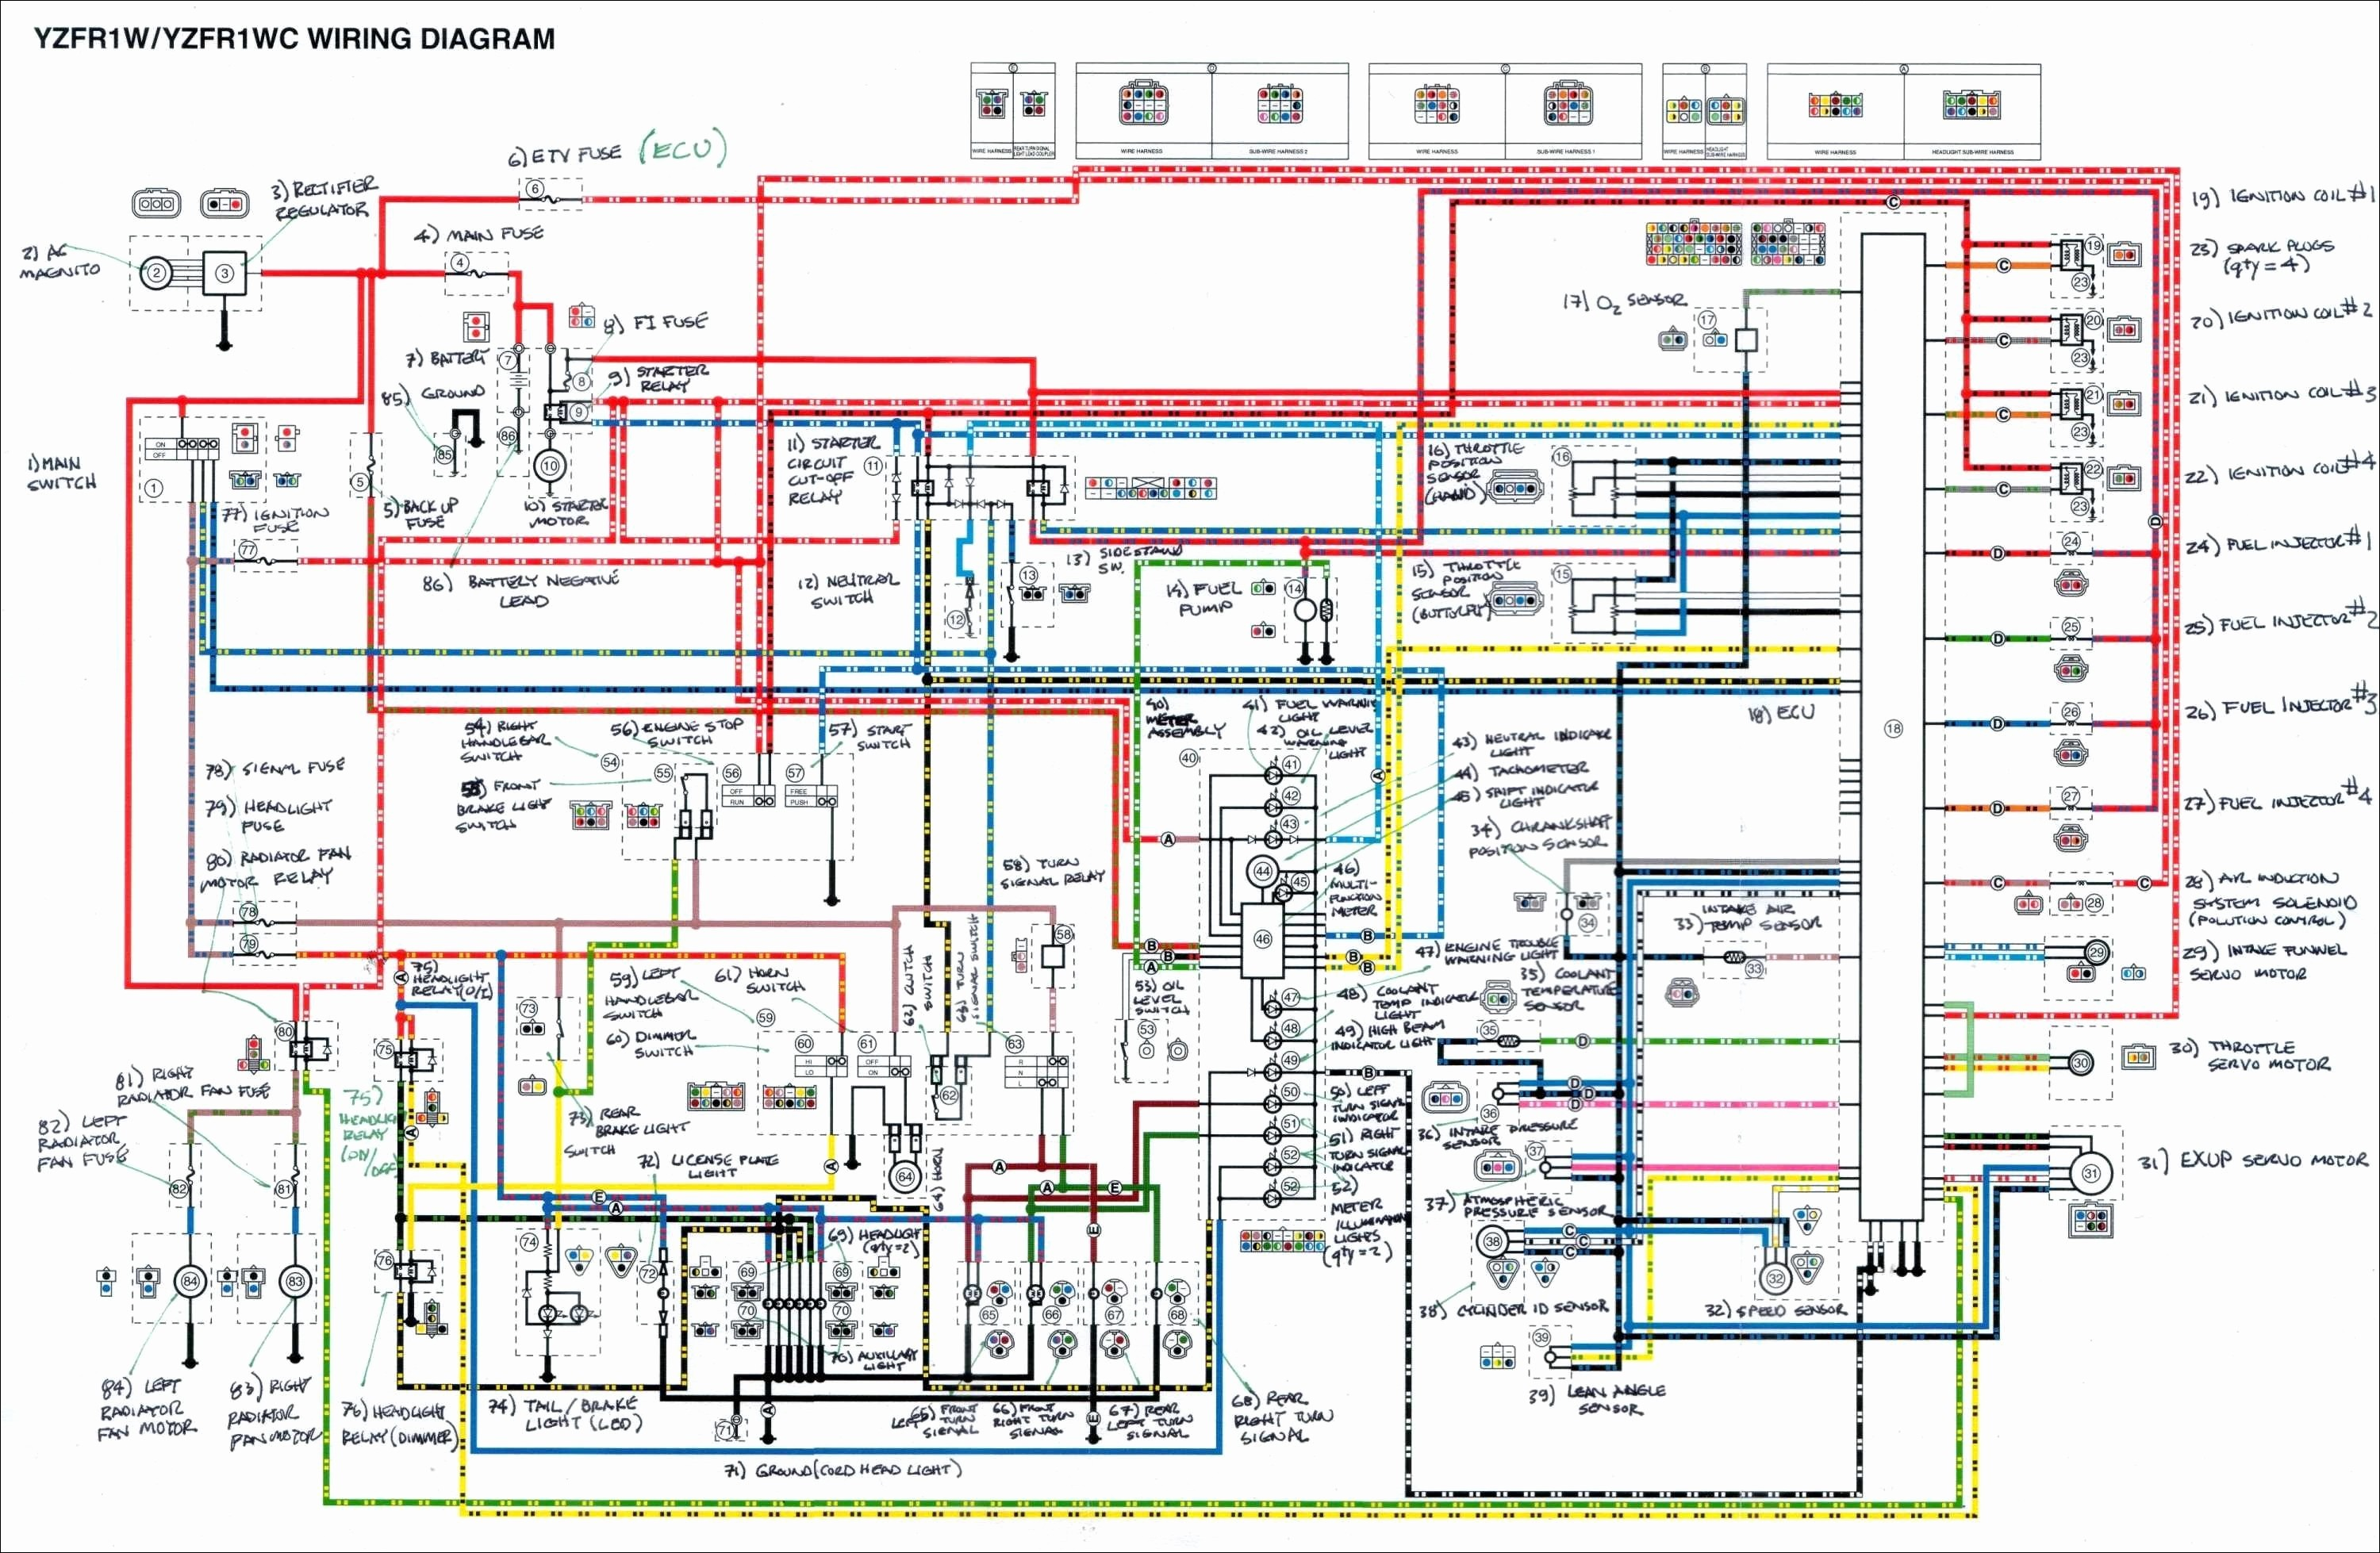 2014 Yamaha Grizzly 550 Wiring Diagram - Engine Manifold Diagram for Wiring  Diagram Schematics | 2014 Yamaha Grizzly 550 Wiring Diagram |  | Wiring Diagram Schematics